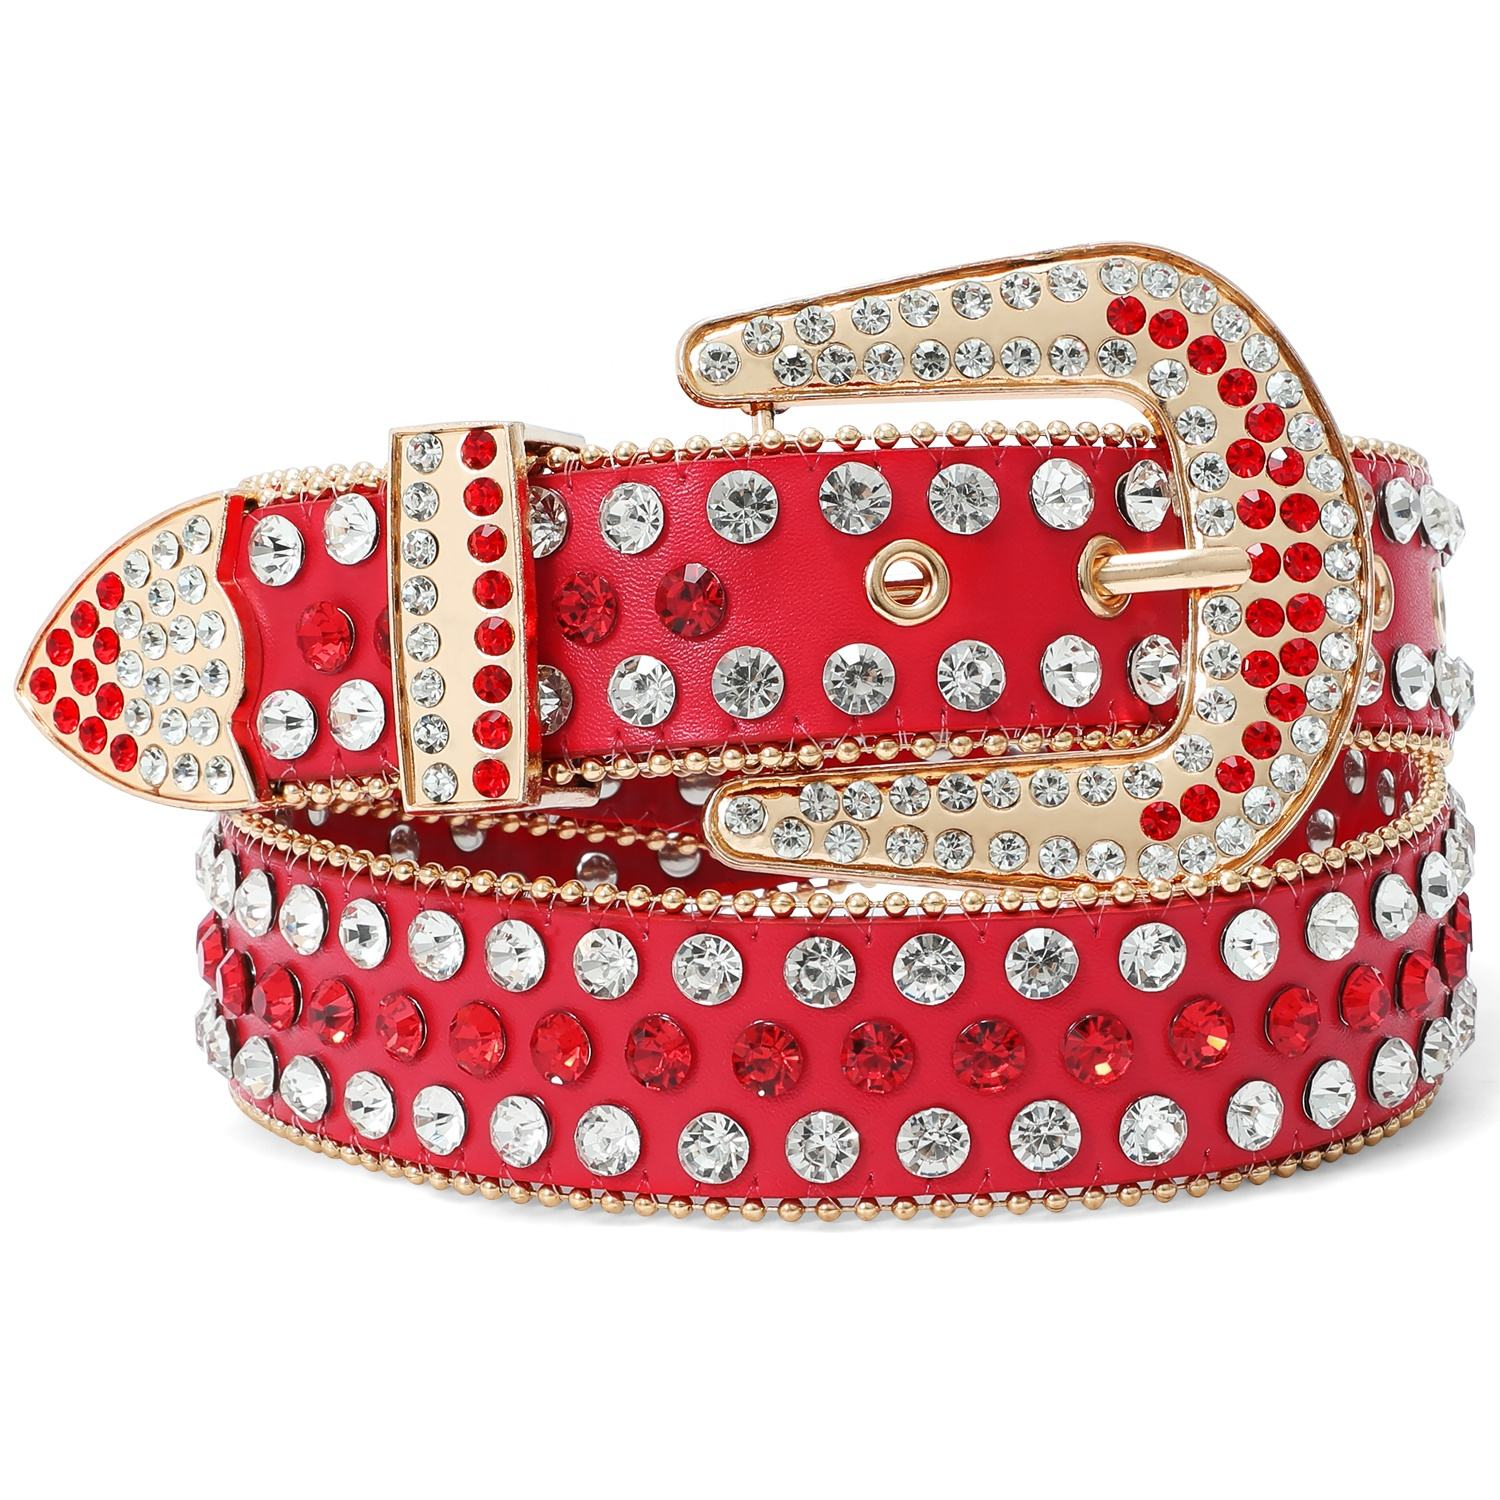 In Stock Shiny Rhinestone Studded Women Men Unisex Belt Diamond Western Belt Fancy Stylish Fashion Designer Belt